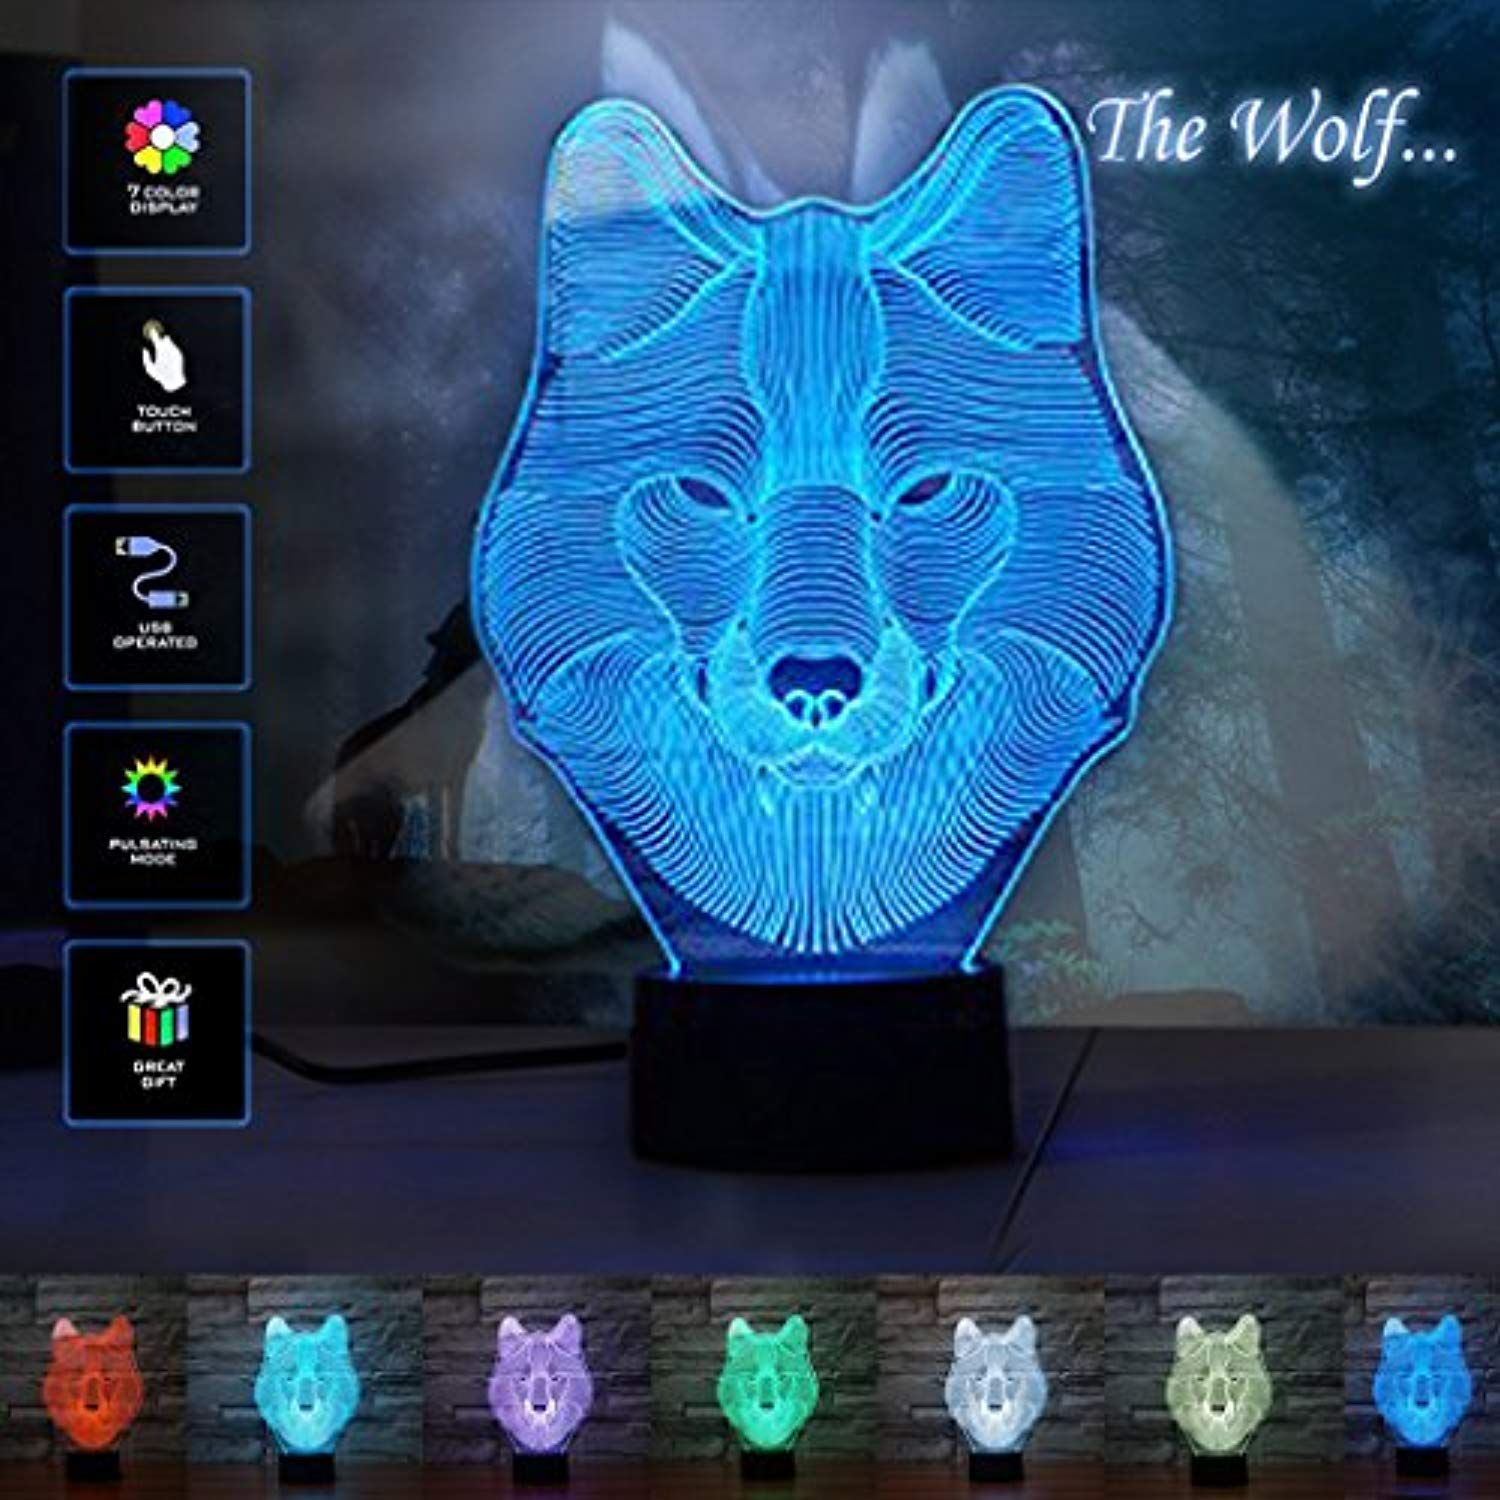 Animals Wolf 3d Illusion Lamp 3d Night Light Touch Table Desk Lamps 7 Color Changing Lights With Acrylic Flat L 3d Night Light 3d Illusion Lamp Desk Lamps